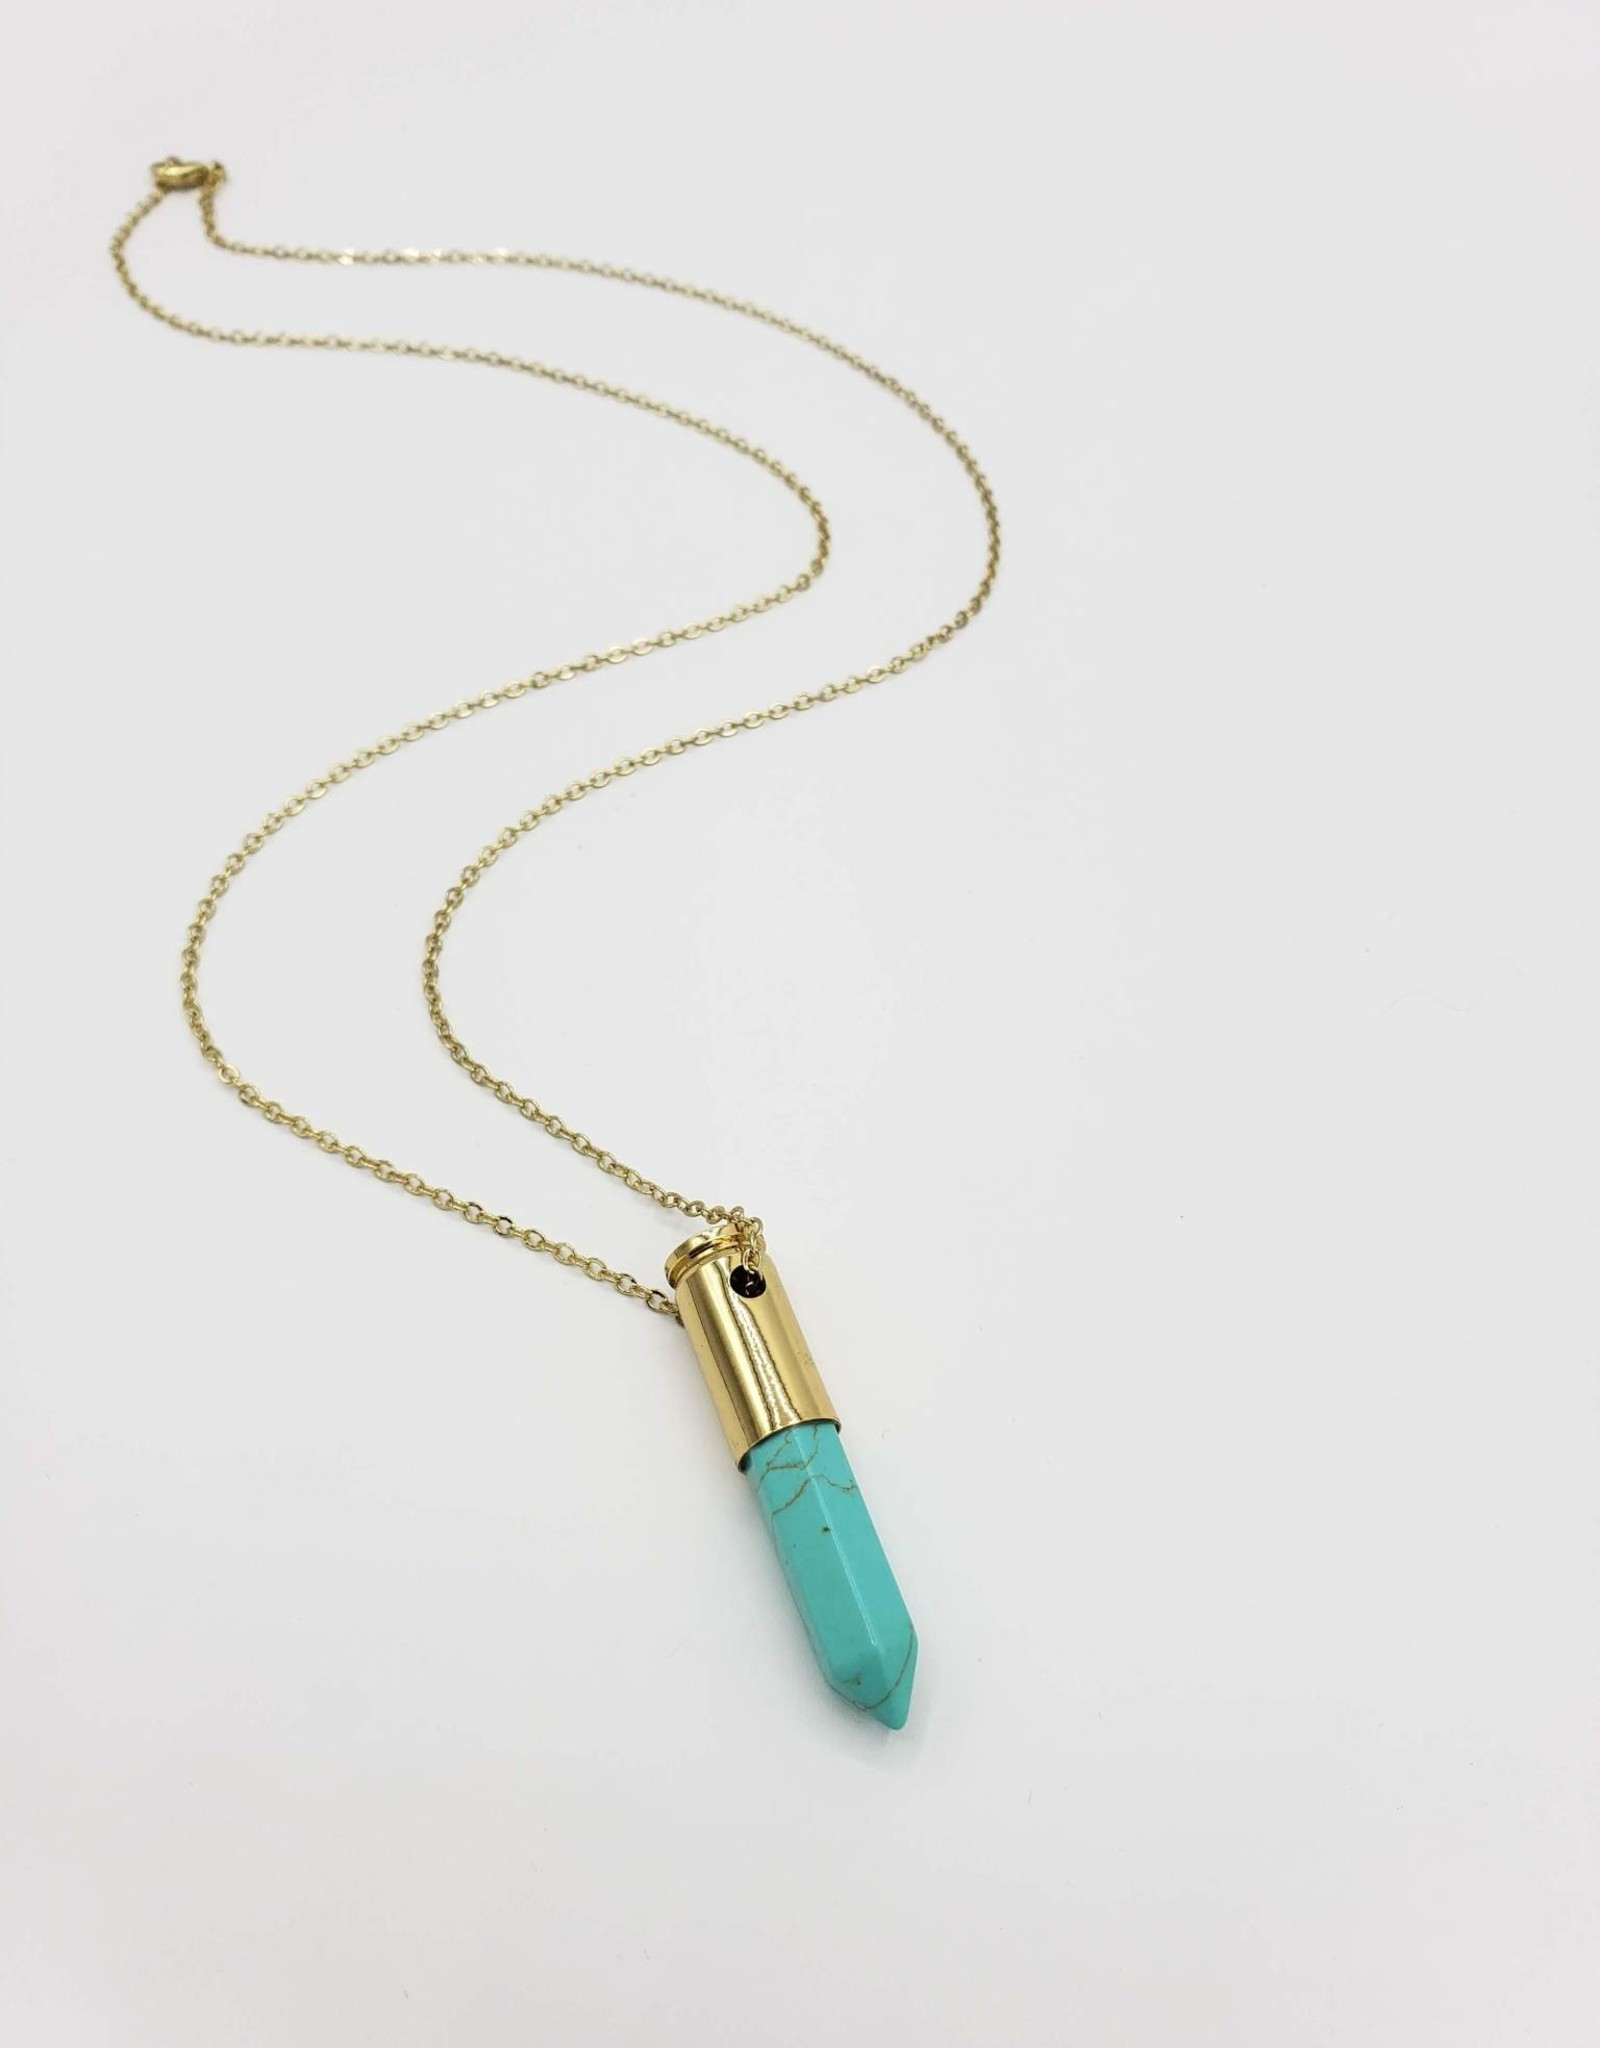 Oh, Hello Friend Blue Howlite Point Necklace, in polished bullet casing